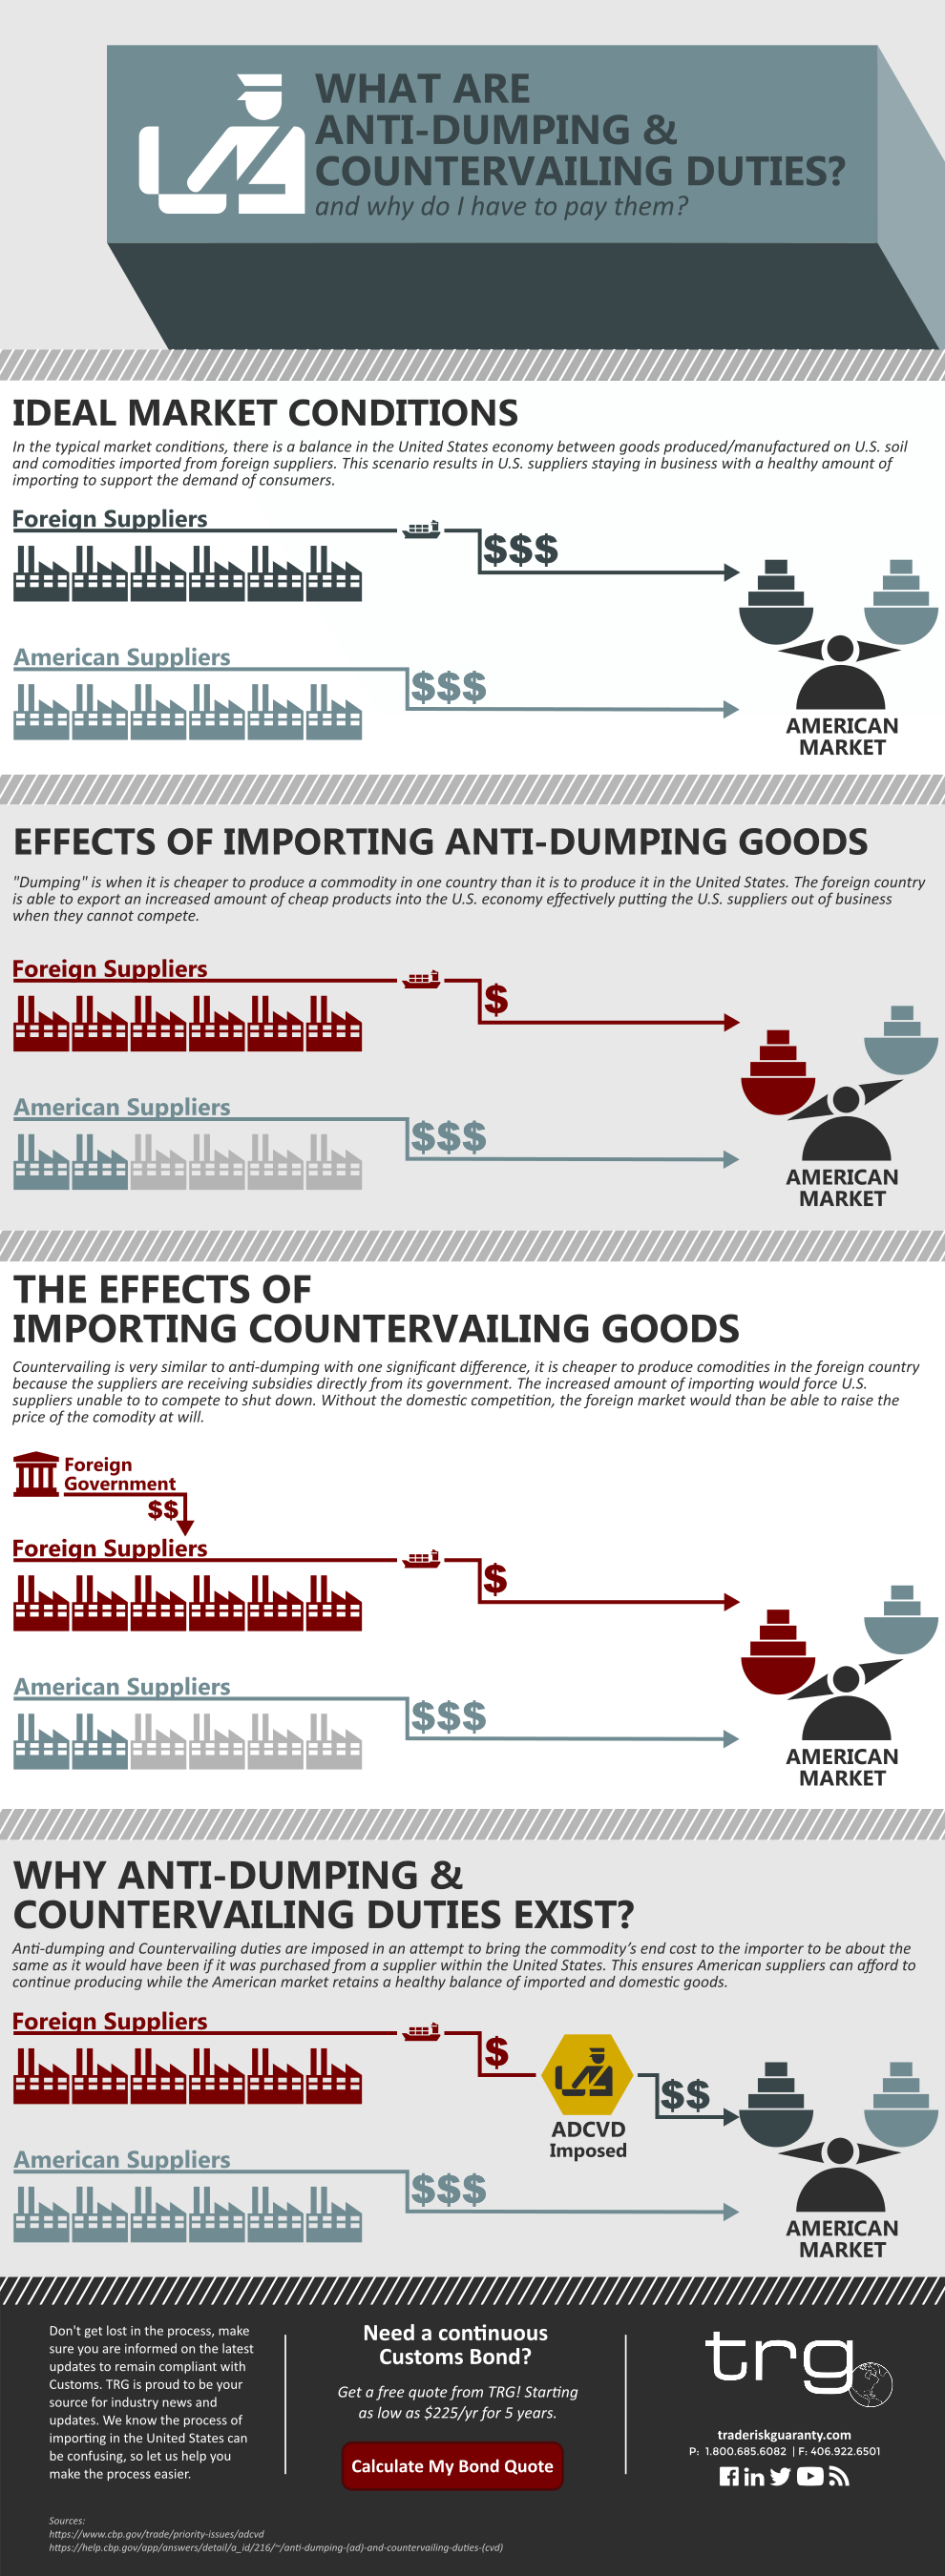 Infographic explaining the definition of anti-dumping and countervailing duties and how they work.